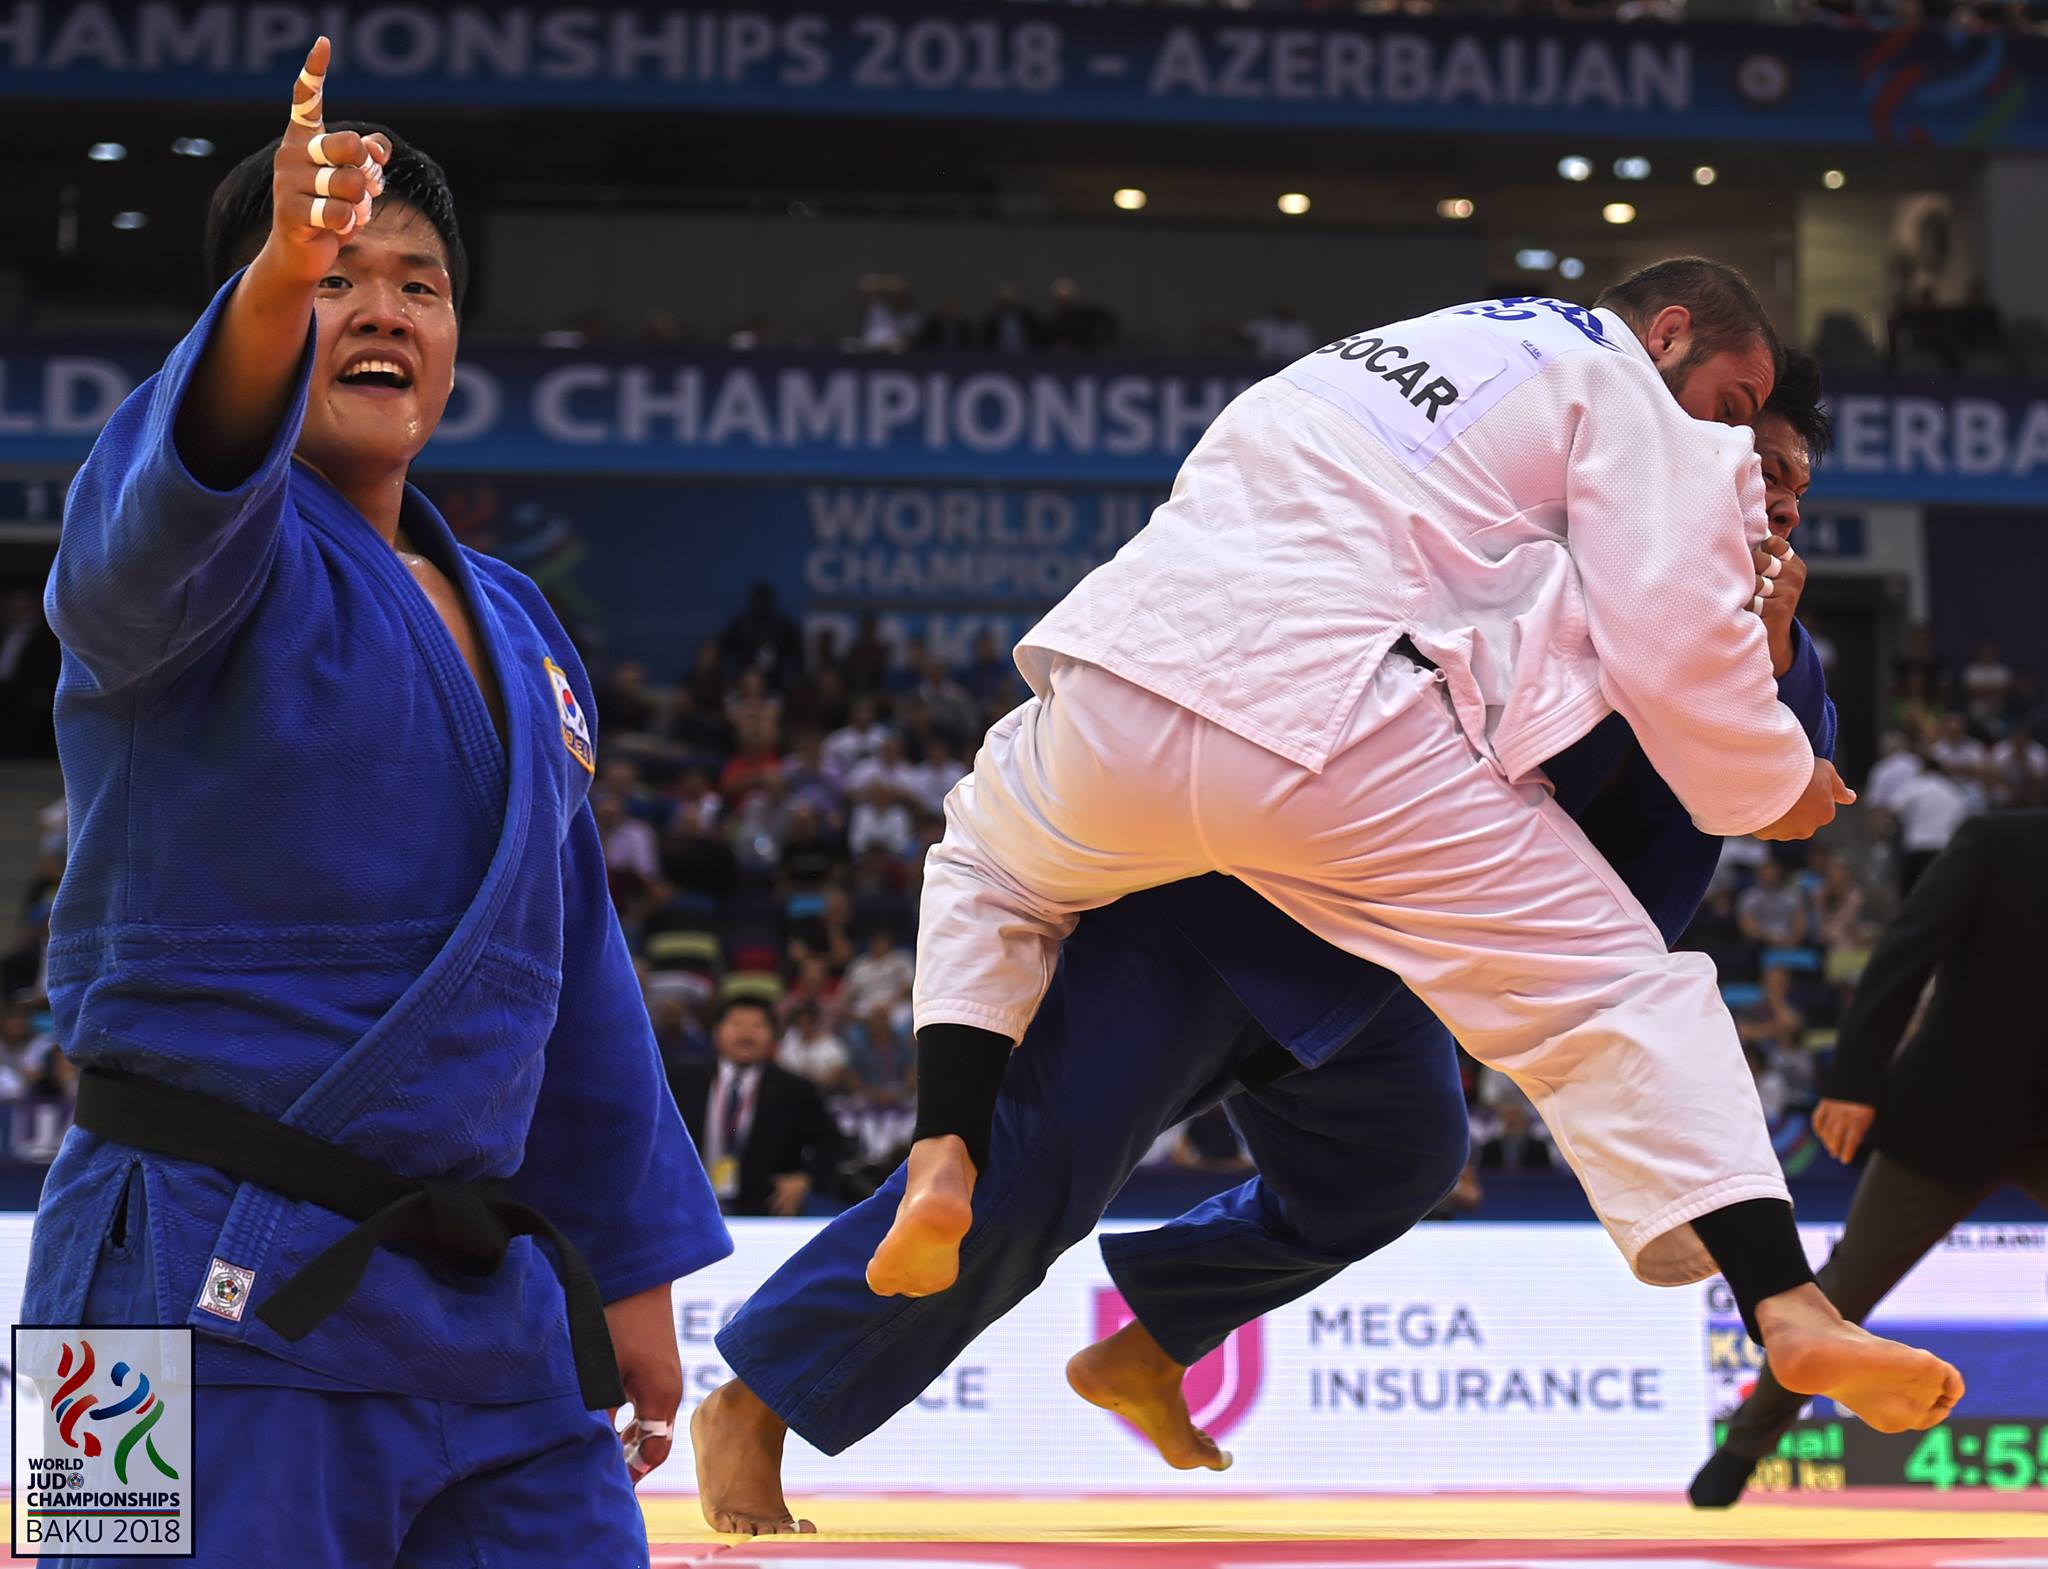 20180925_ijf_fb_100_compilation_cho_guham_gold